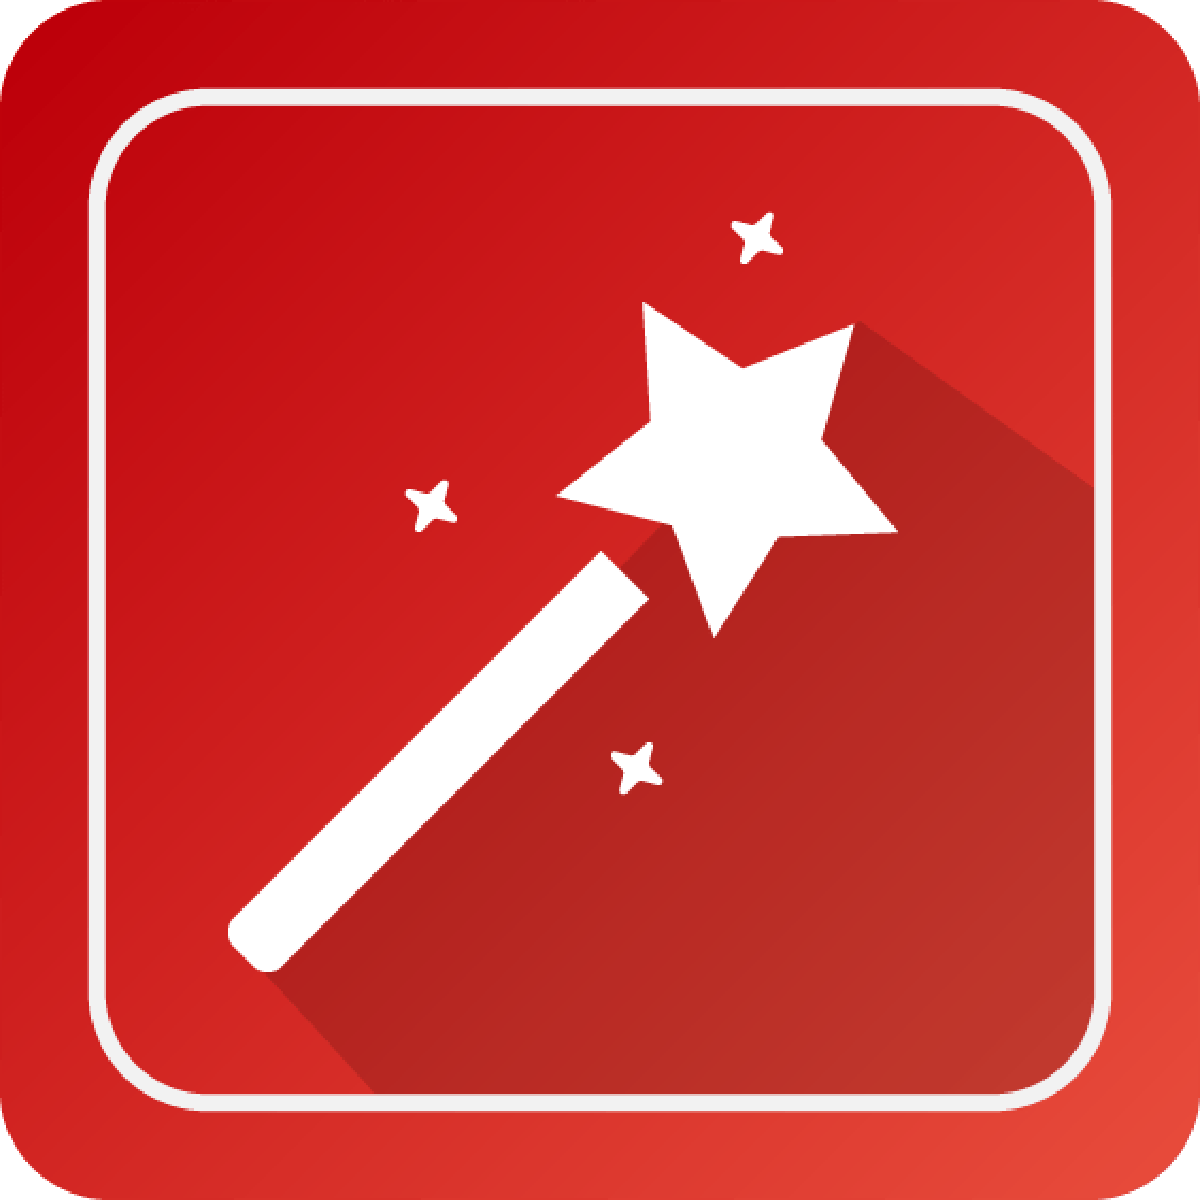 GSP Product Selection Wizard app logo.